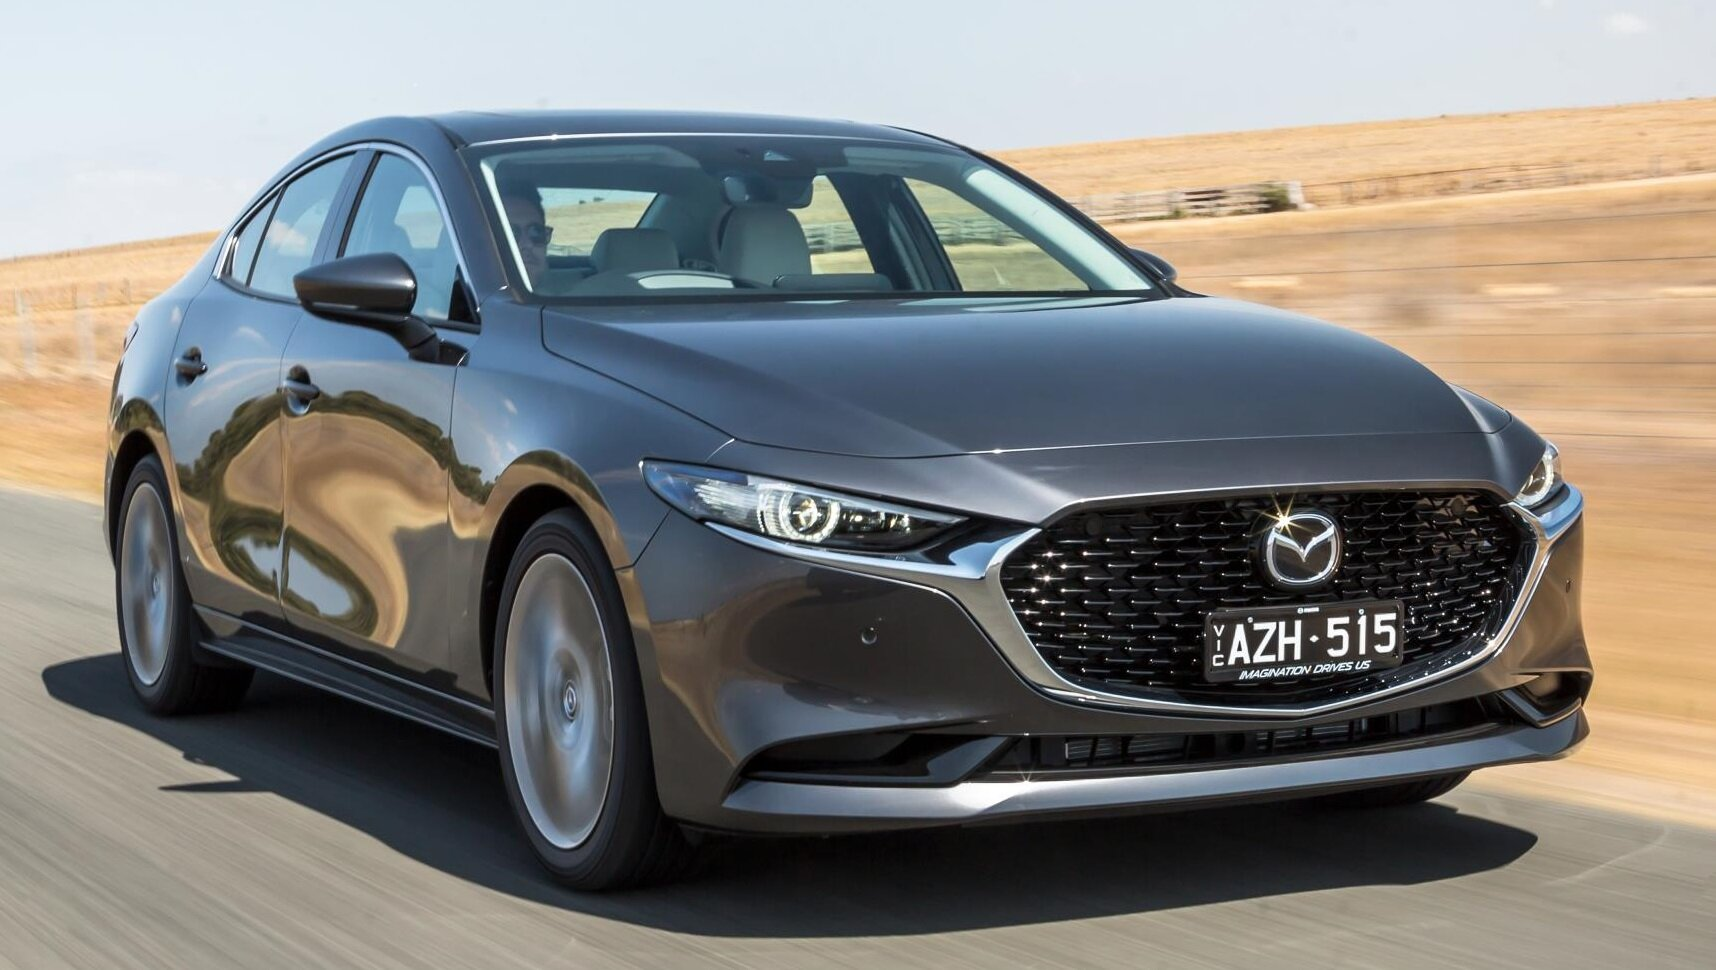 Mazda3sedan2019-ThomasWielecki-094.JPG